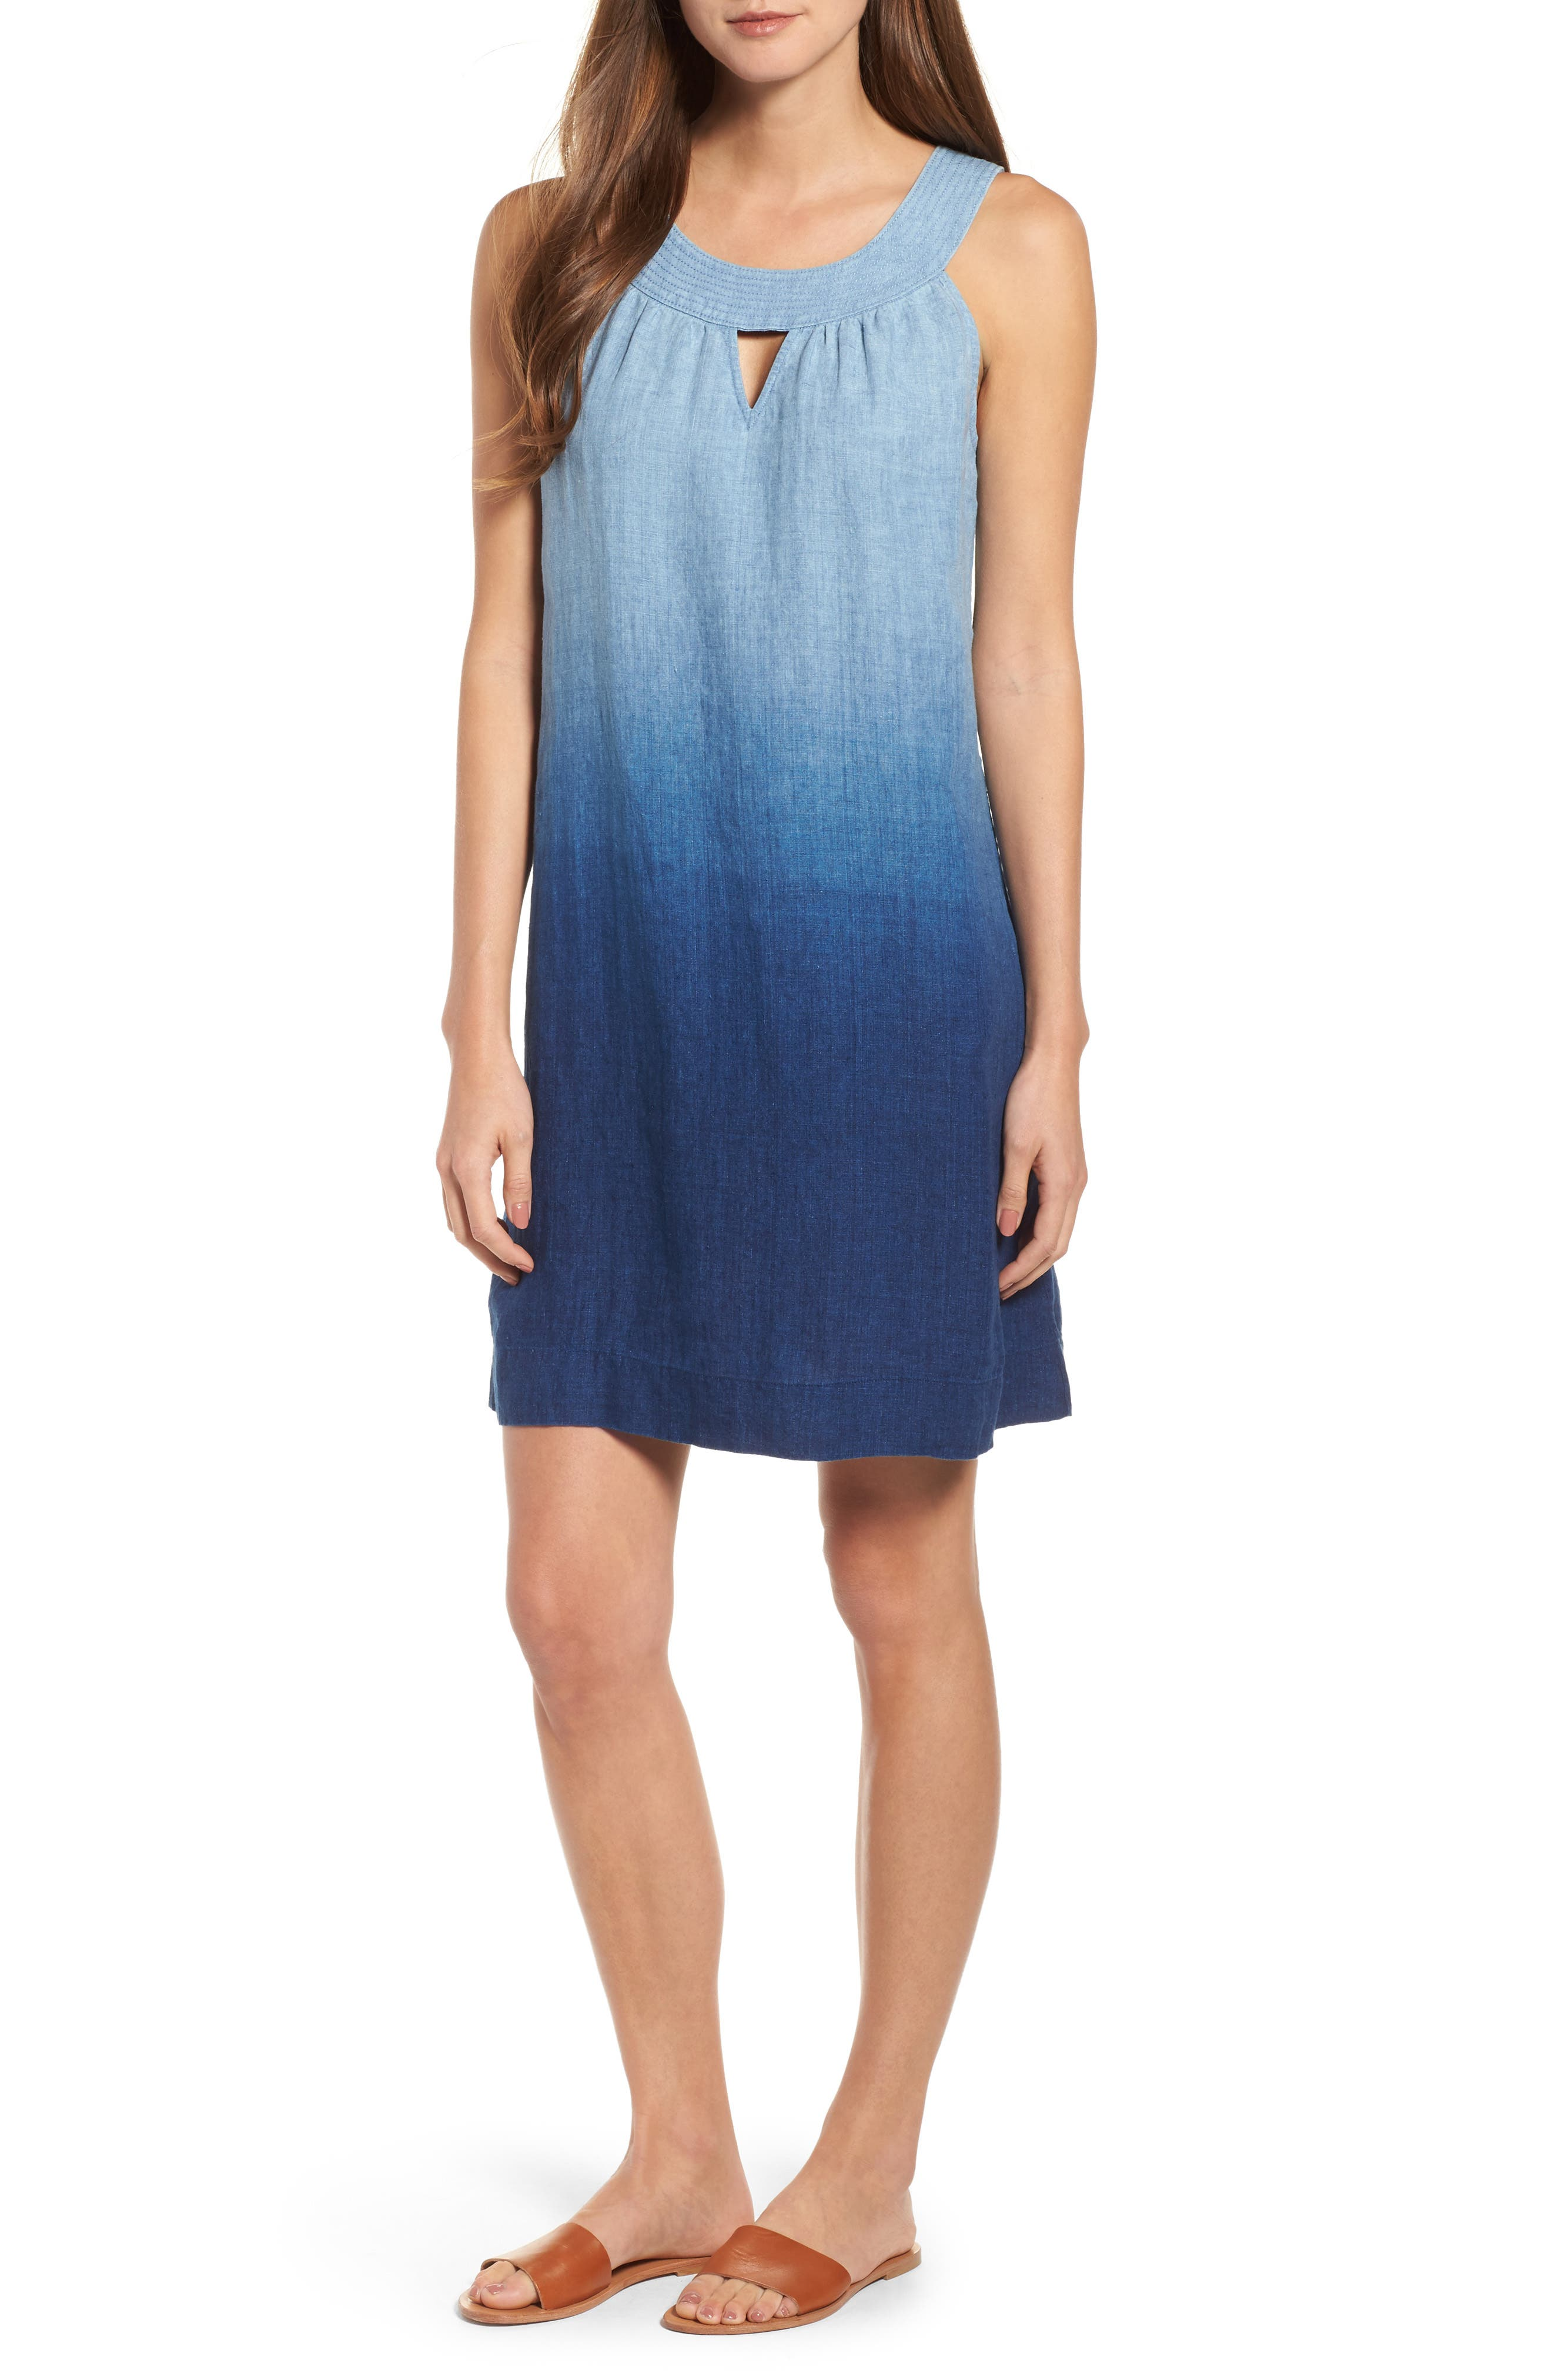 Indigo Dip Dyed Shift Dress,                             Main thumbnail 1, color,